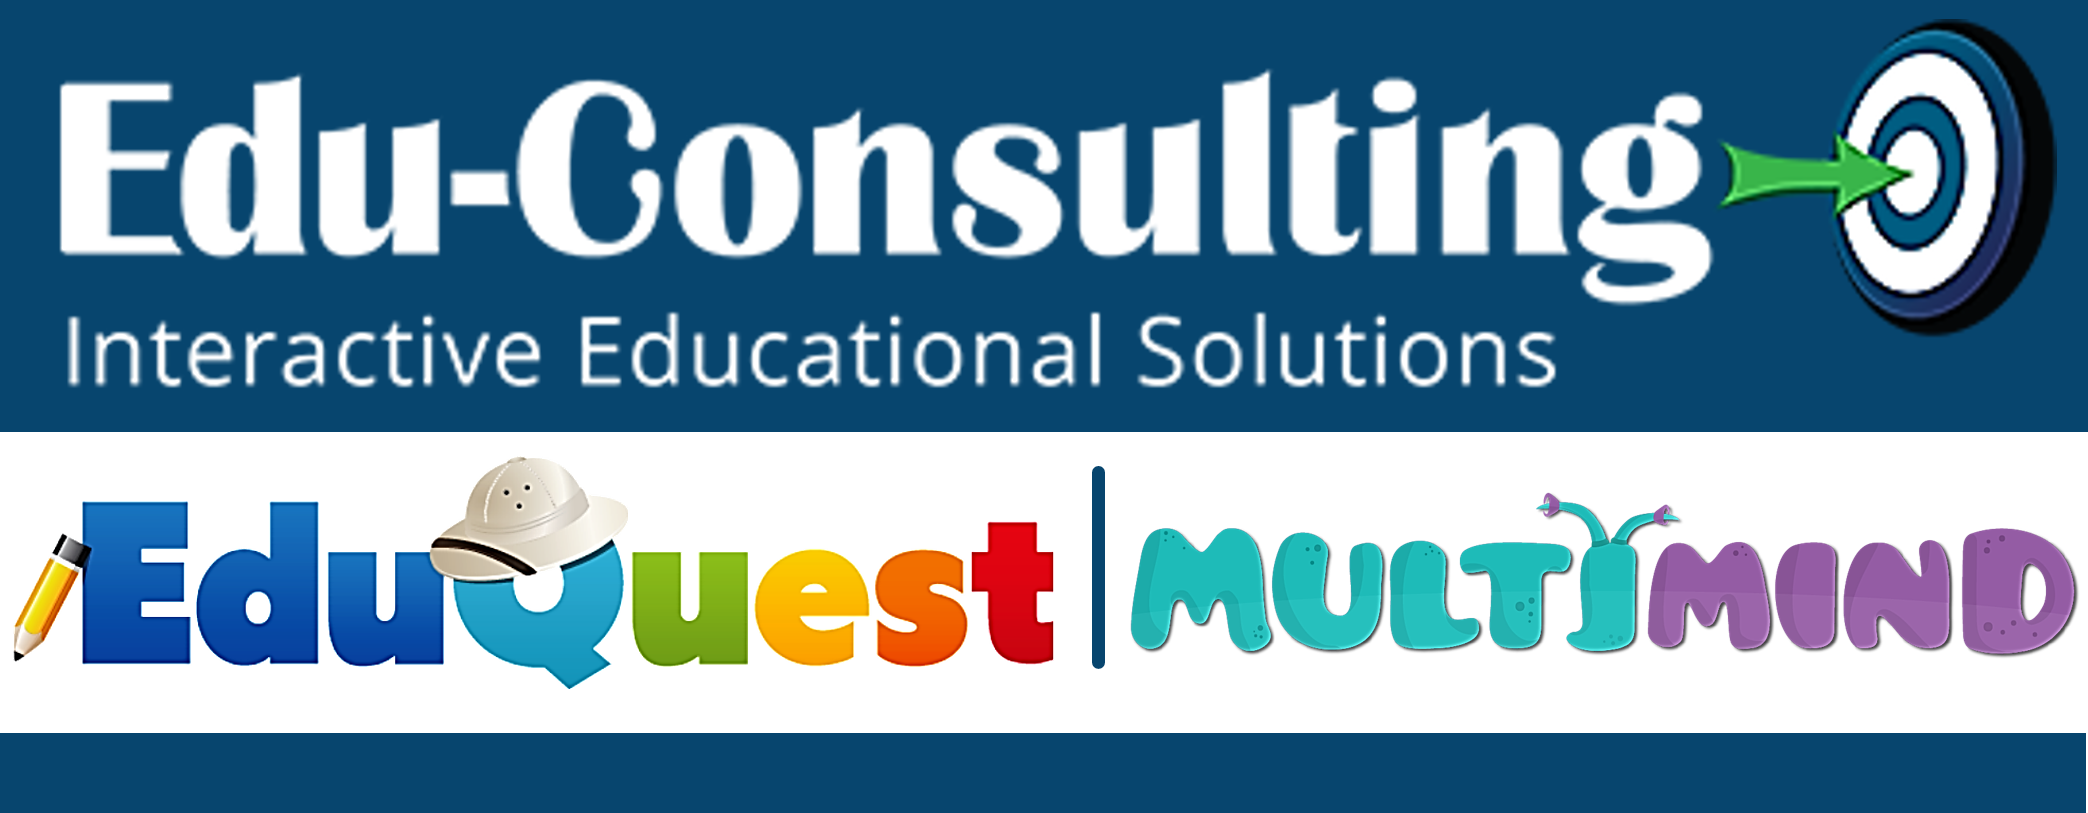 EISI educational technology product - edu-consulting